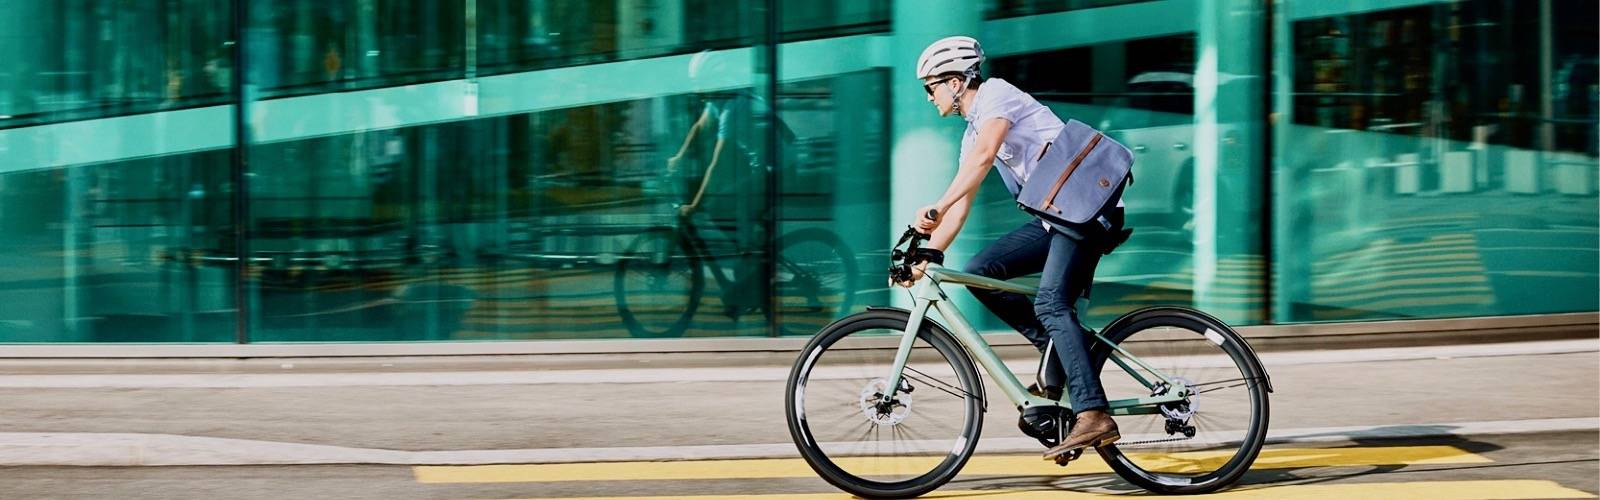 The best bike for exercise and commuting.